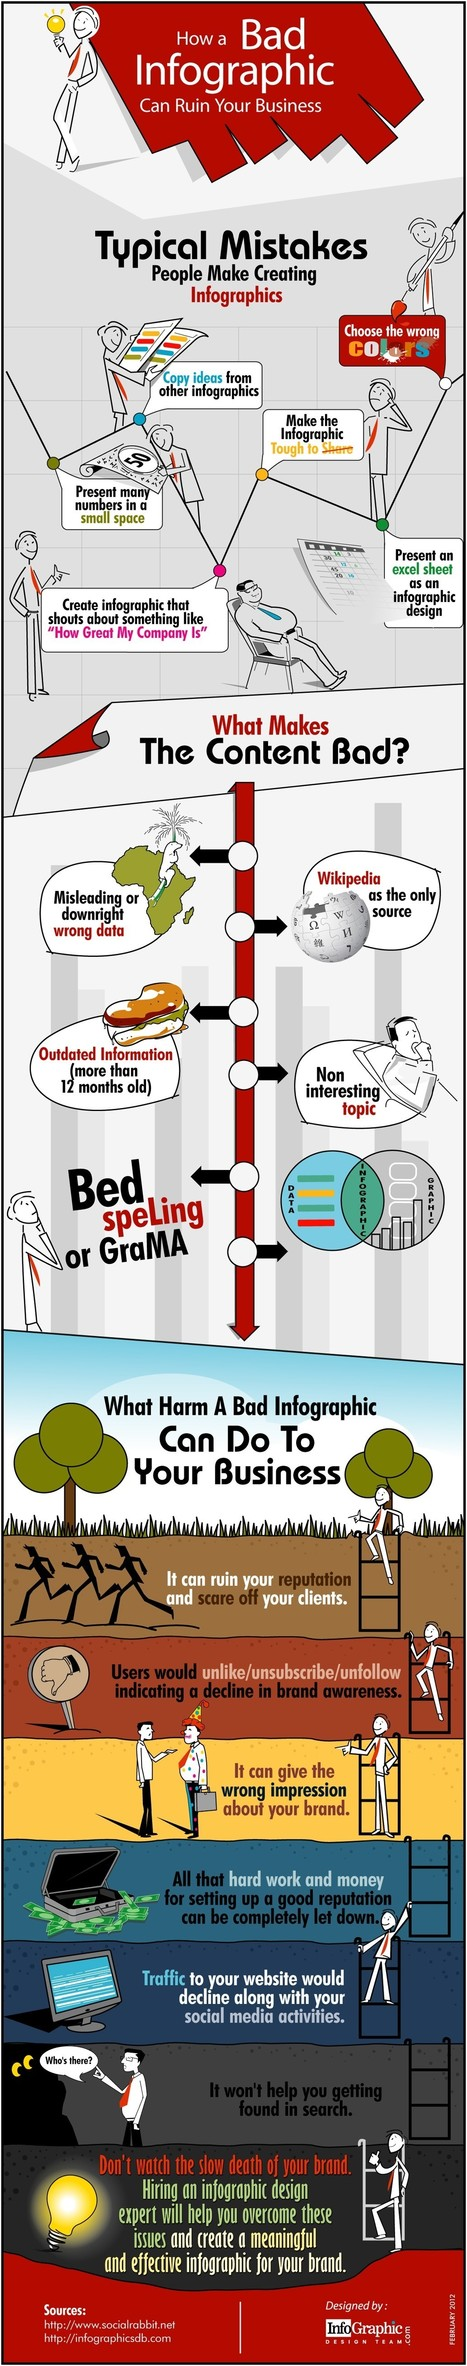 "10 Reasons How Bad Infographic can Damage Your Business | CF Art Dept ""stuff"" 